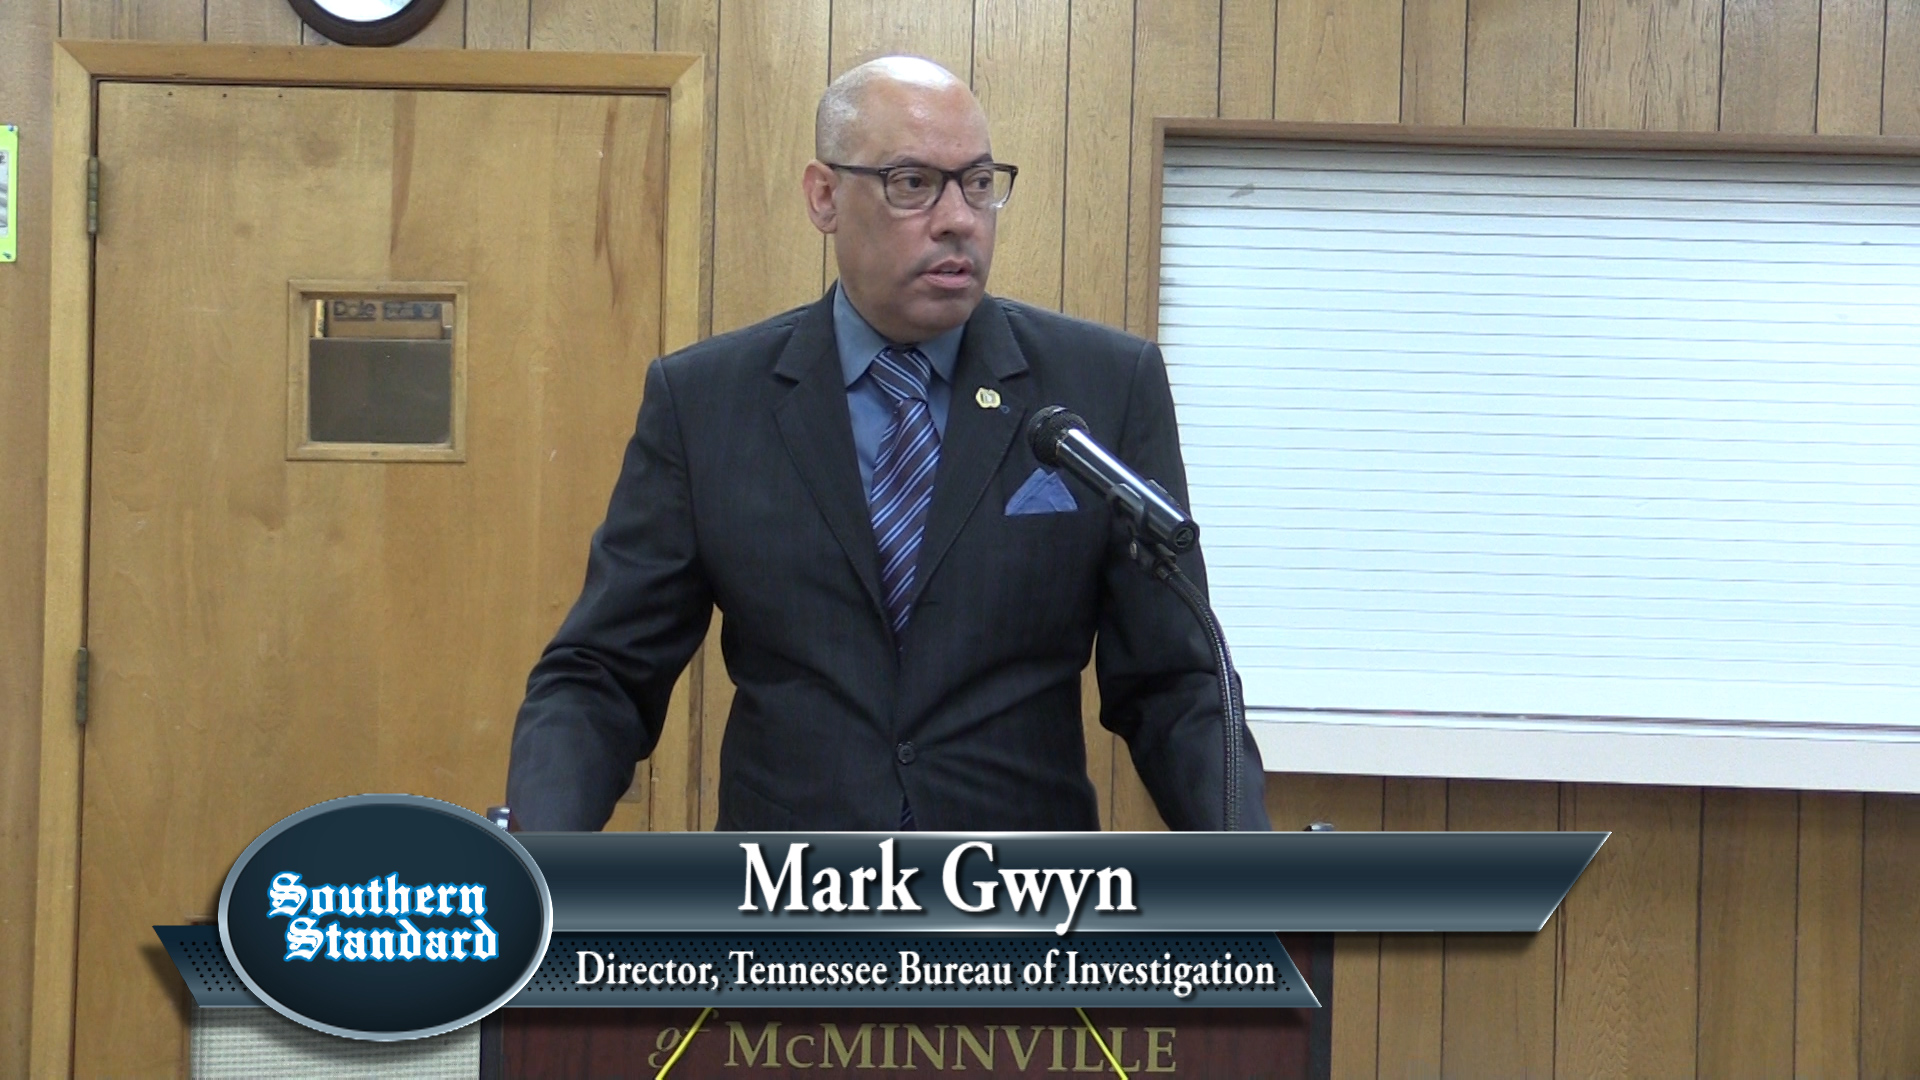 VIDEO: Mark Gwyn talks about crime in Tennessee